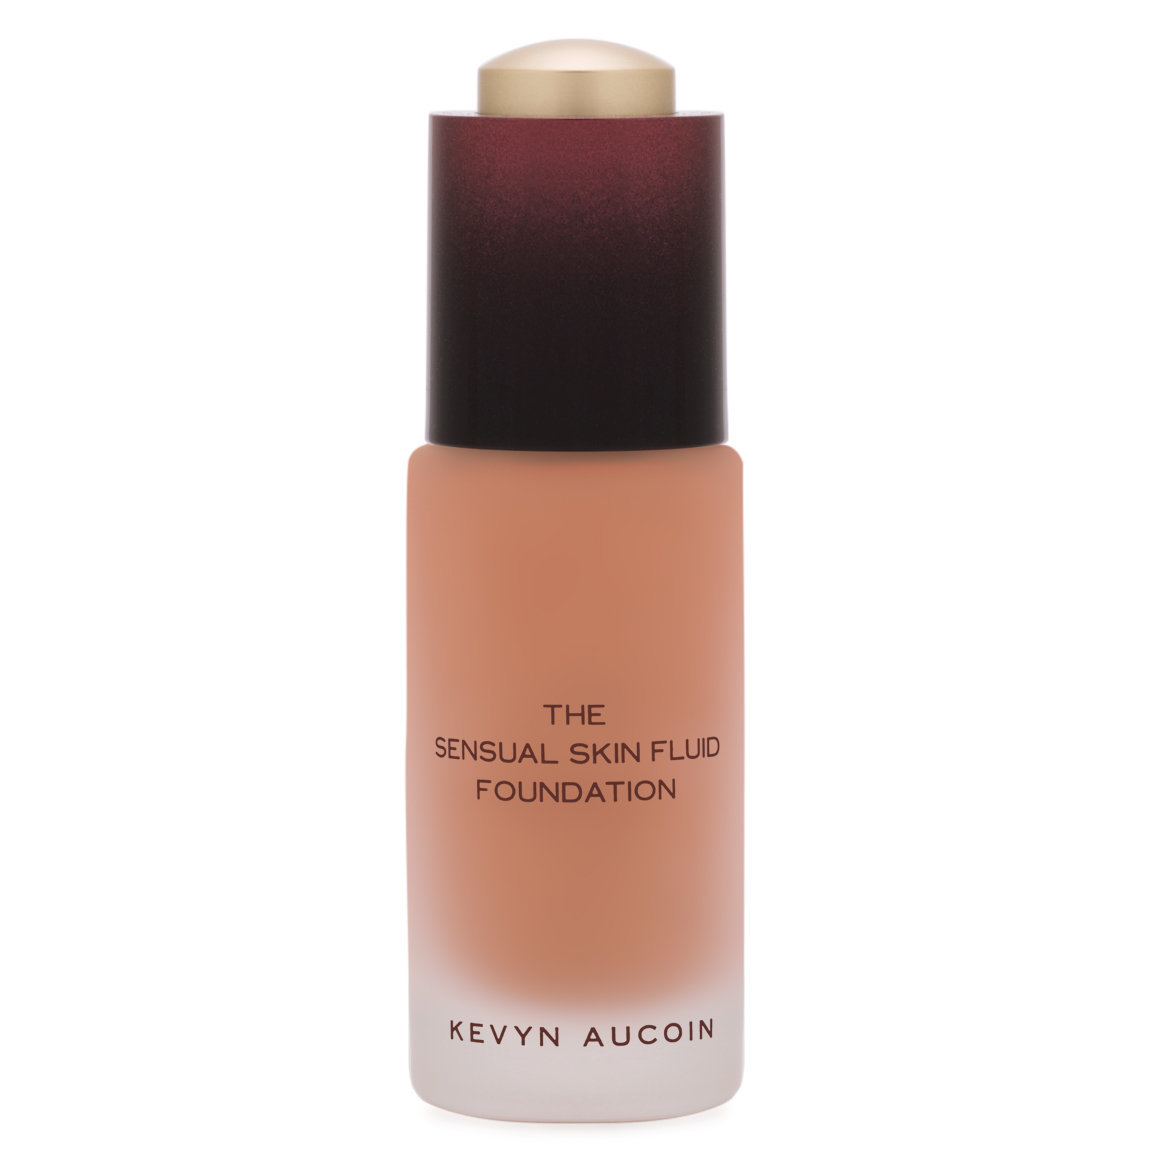 Kevyn Aucoin The Sensual Skin Fluid Foundation SF09 alternative view 1.